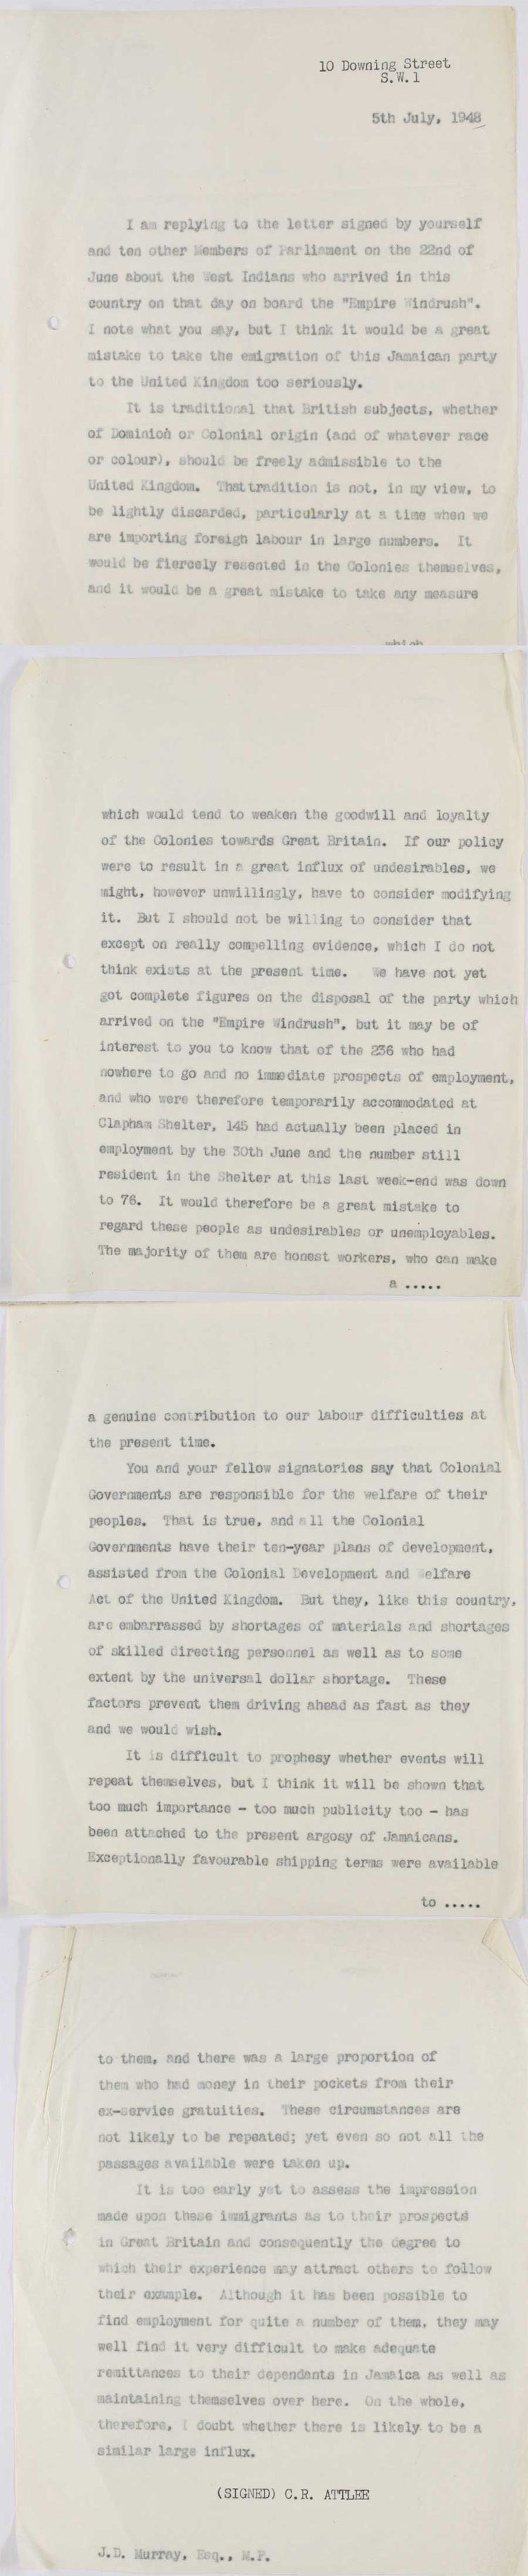 Letter from Prime Minister Attlee to an M.P. about immigration to the U.K, 5th July, 1948 (HO 213/ 715)